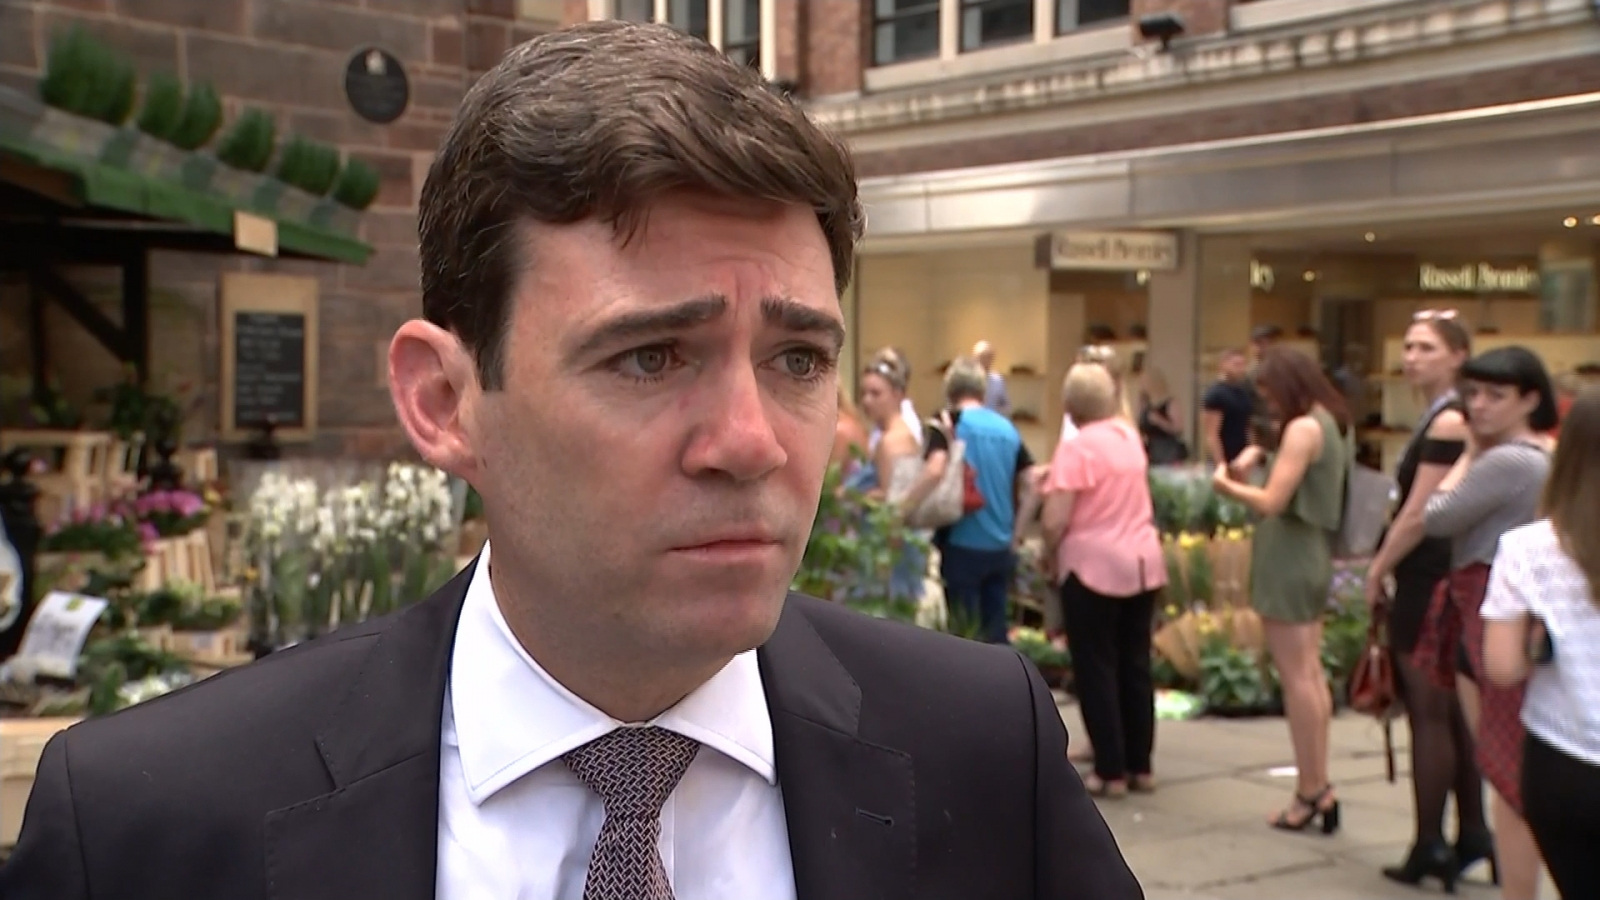 Mayor Andy Burnham praises 'inspirational' people of Manchester after attack